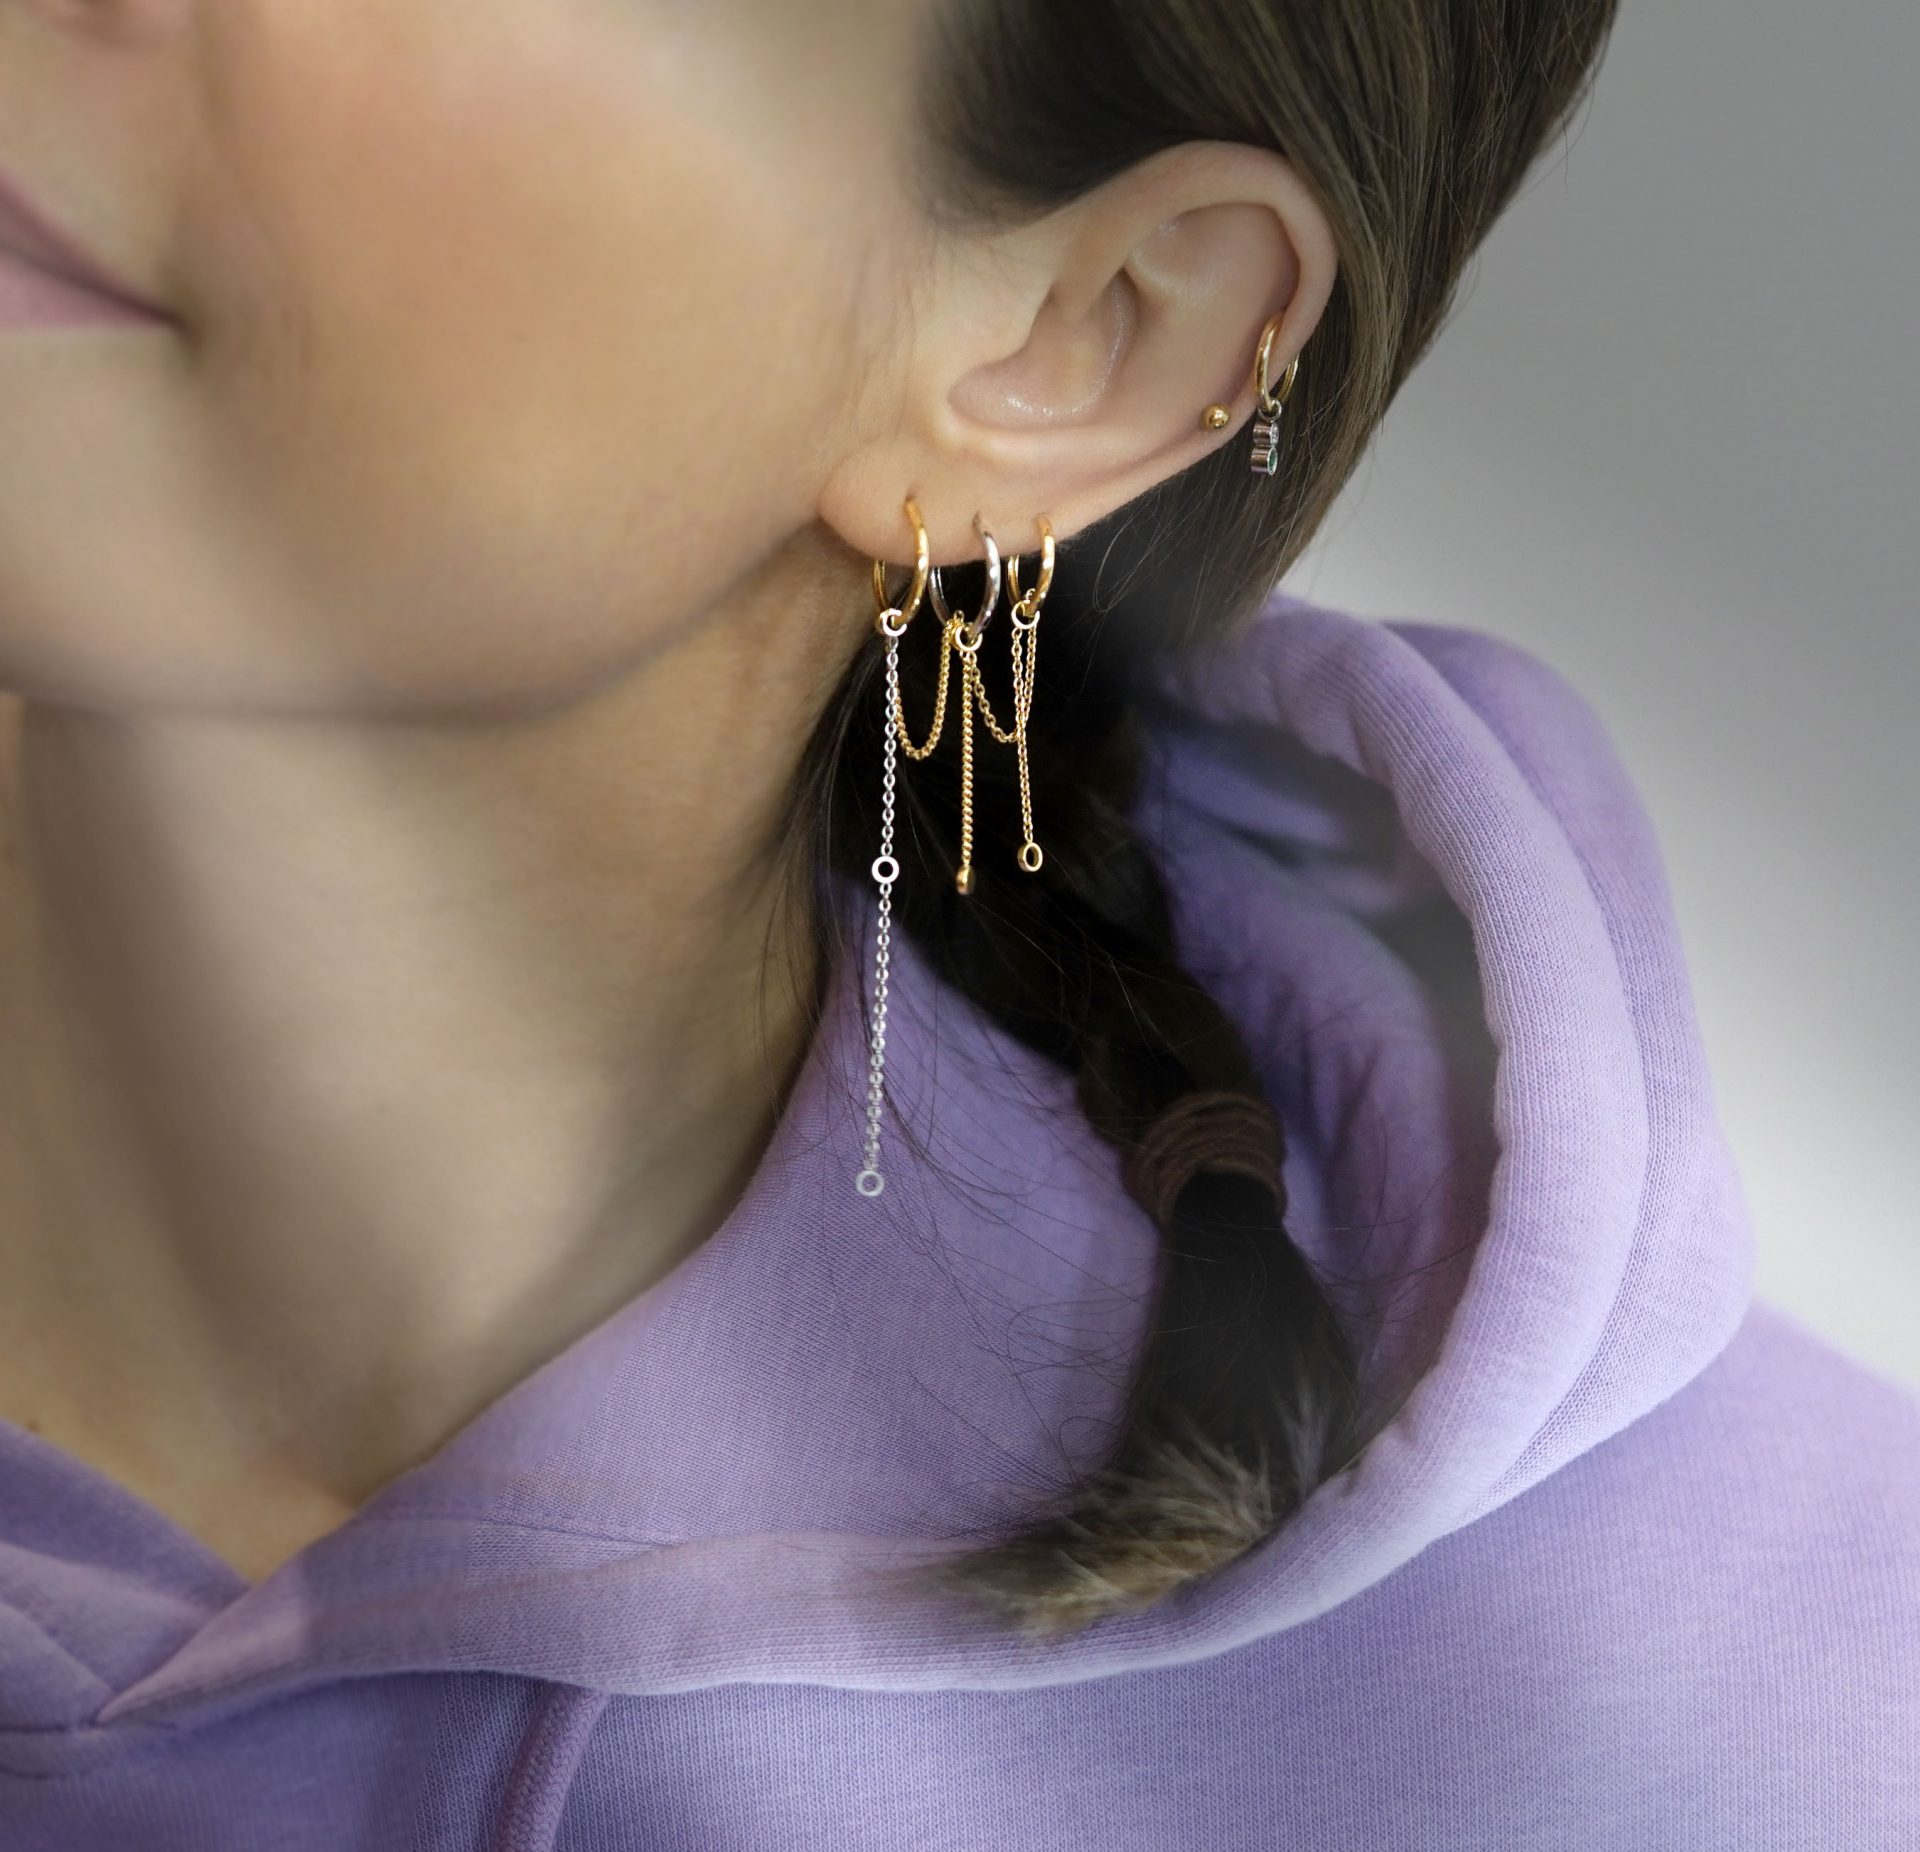 solid-18k-yellow-white-gold-chain-transformers-ear-stacks-piercing-combinations-lena-cohen